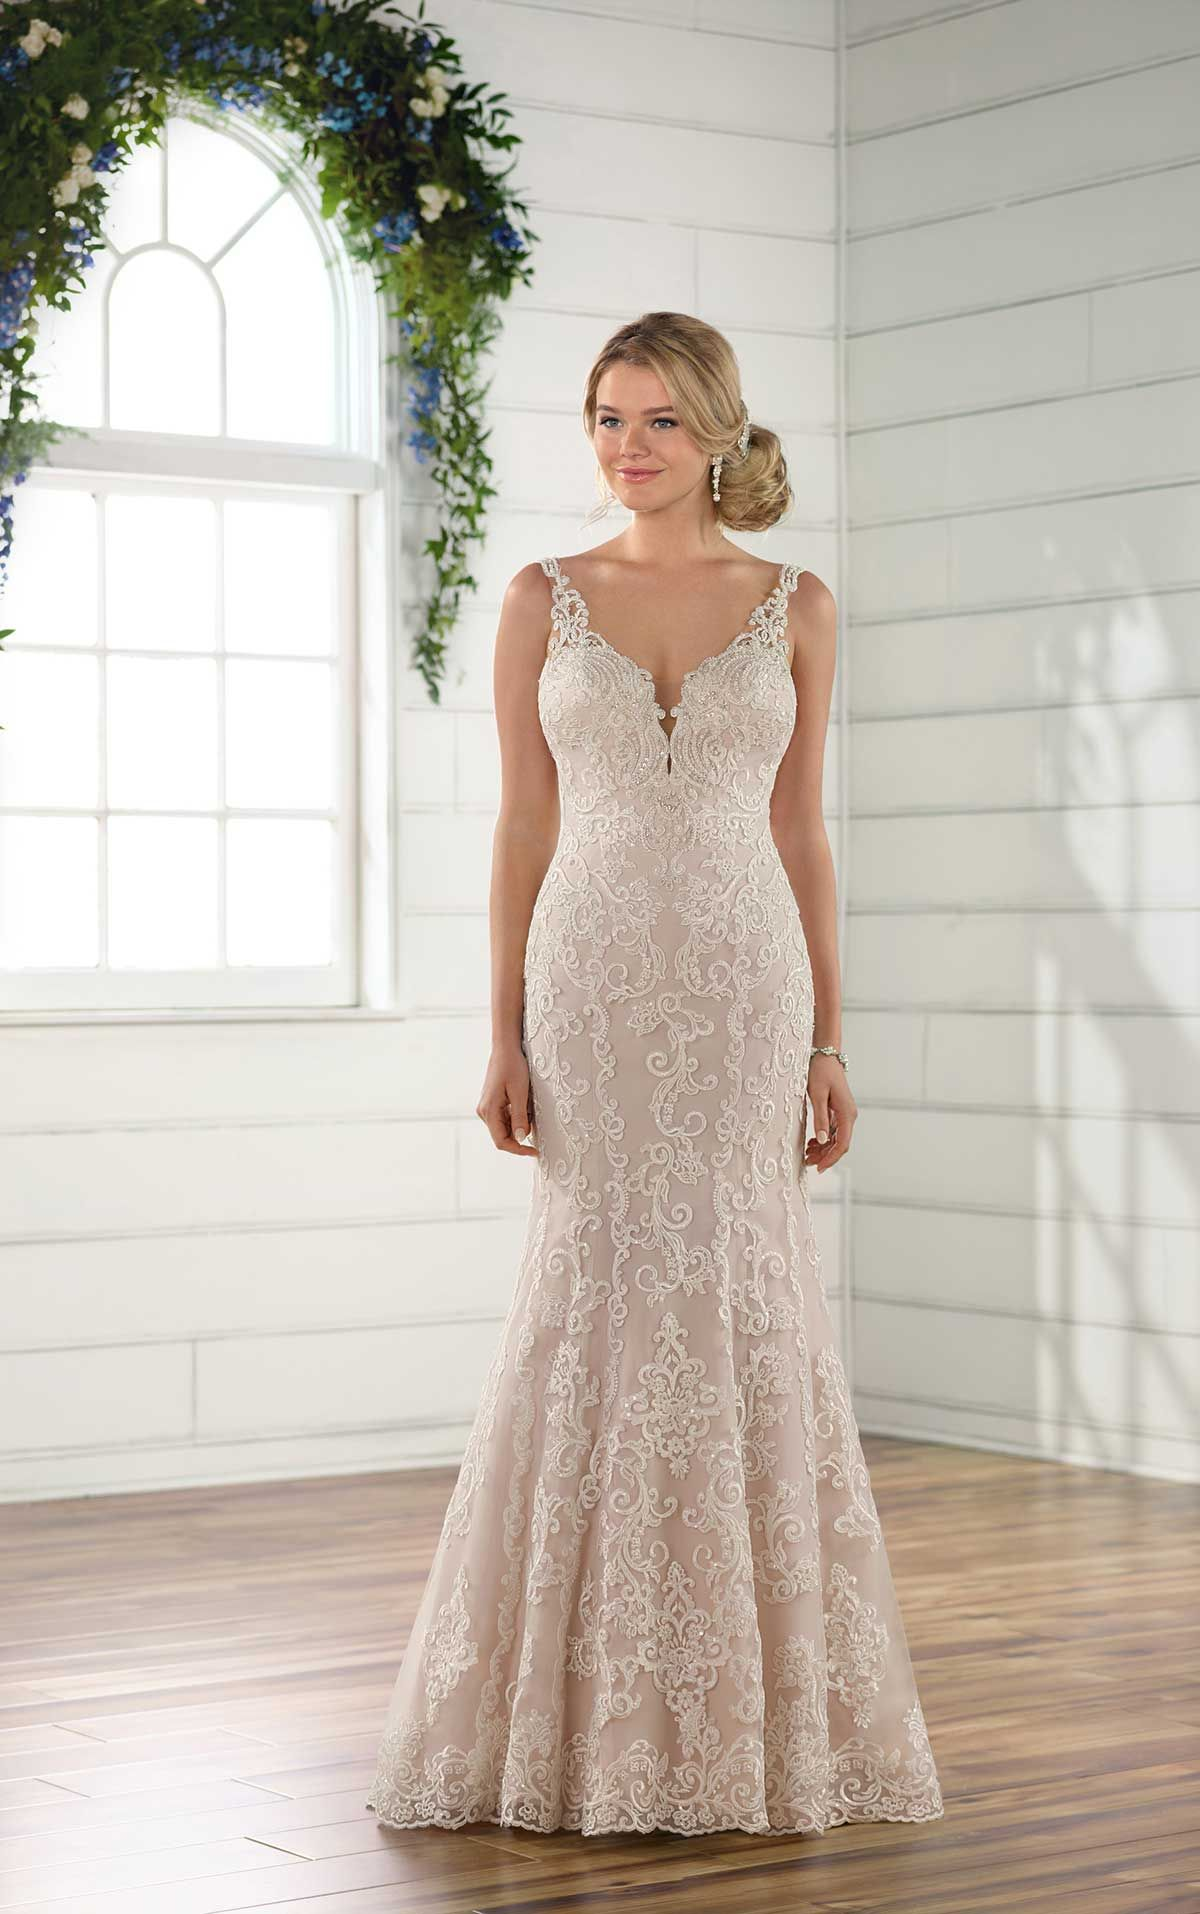 Bridal wedding dresses  Plus size wedding dress lace fit and flare wedding dress with